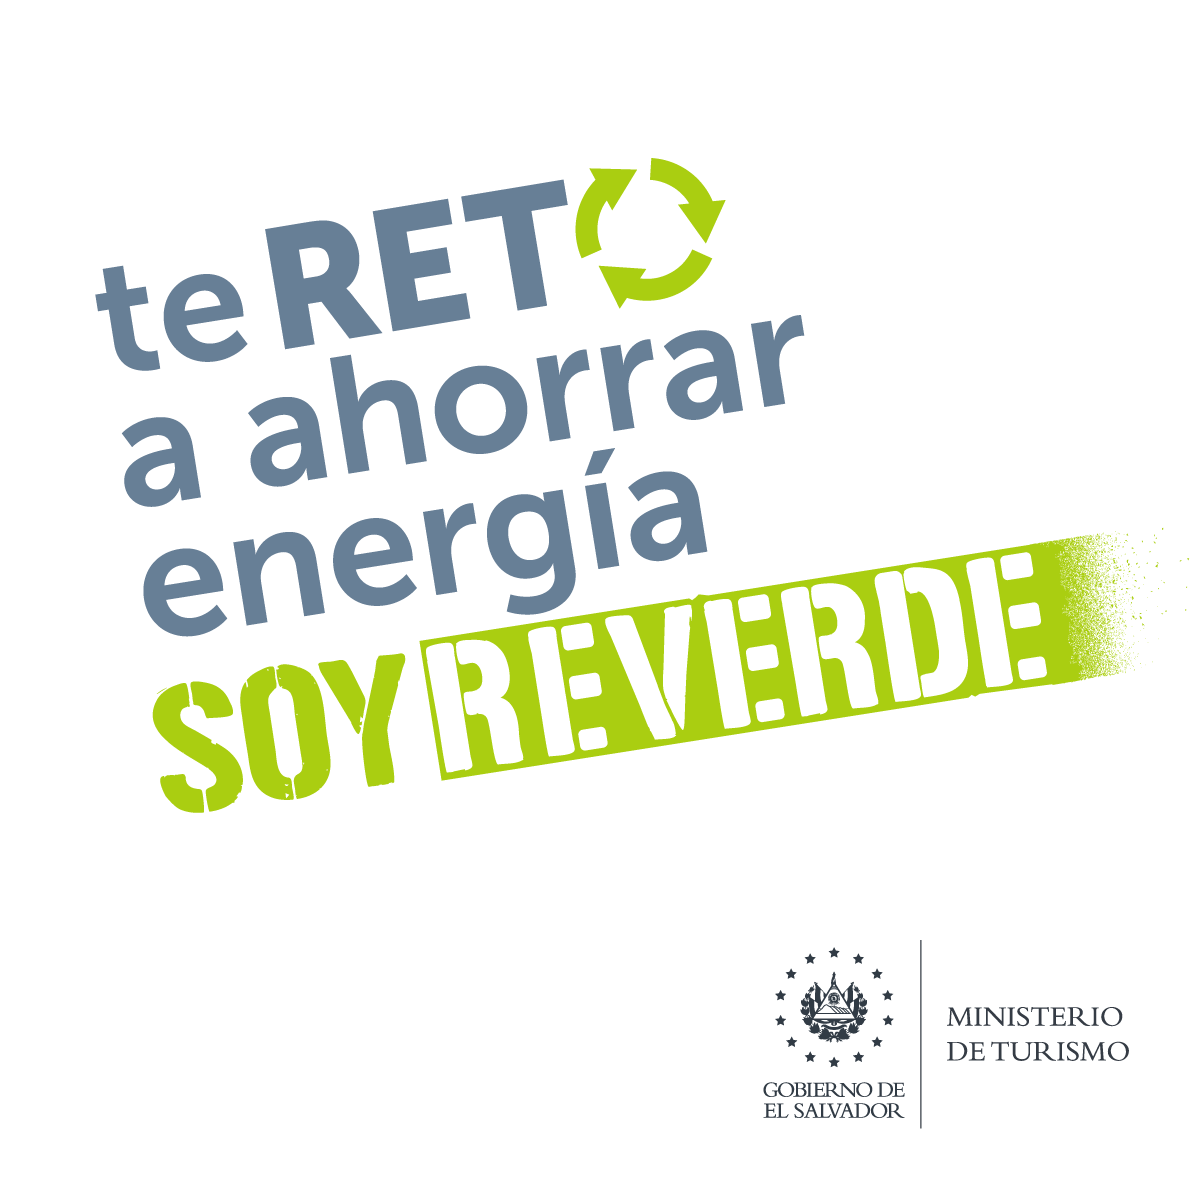 //www.mitur.gob.sv/franja-costero-marina/wp-content/uploads/2020/08/CAMP_REVERDE_ENERGIA_1-1.png